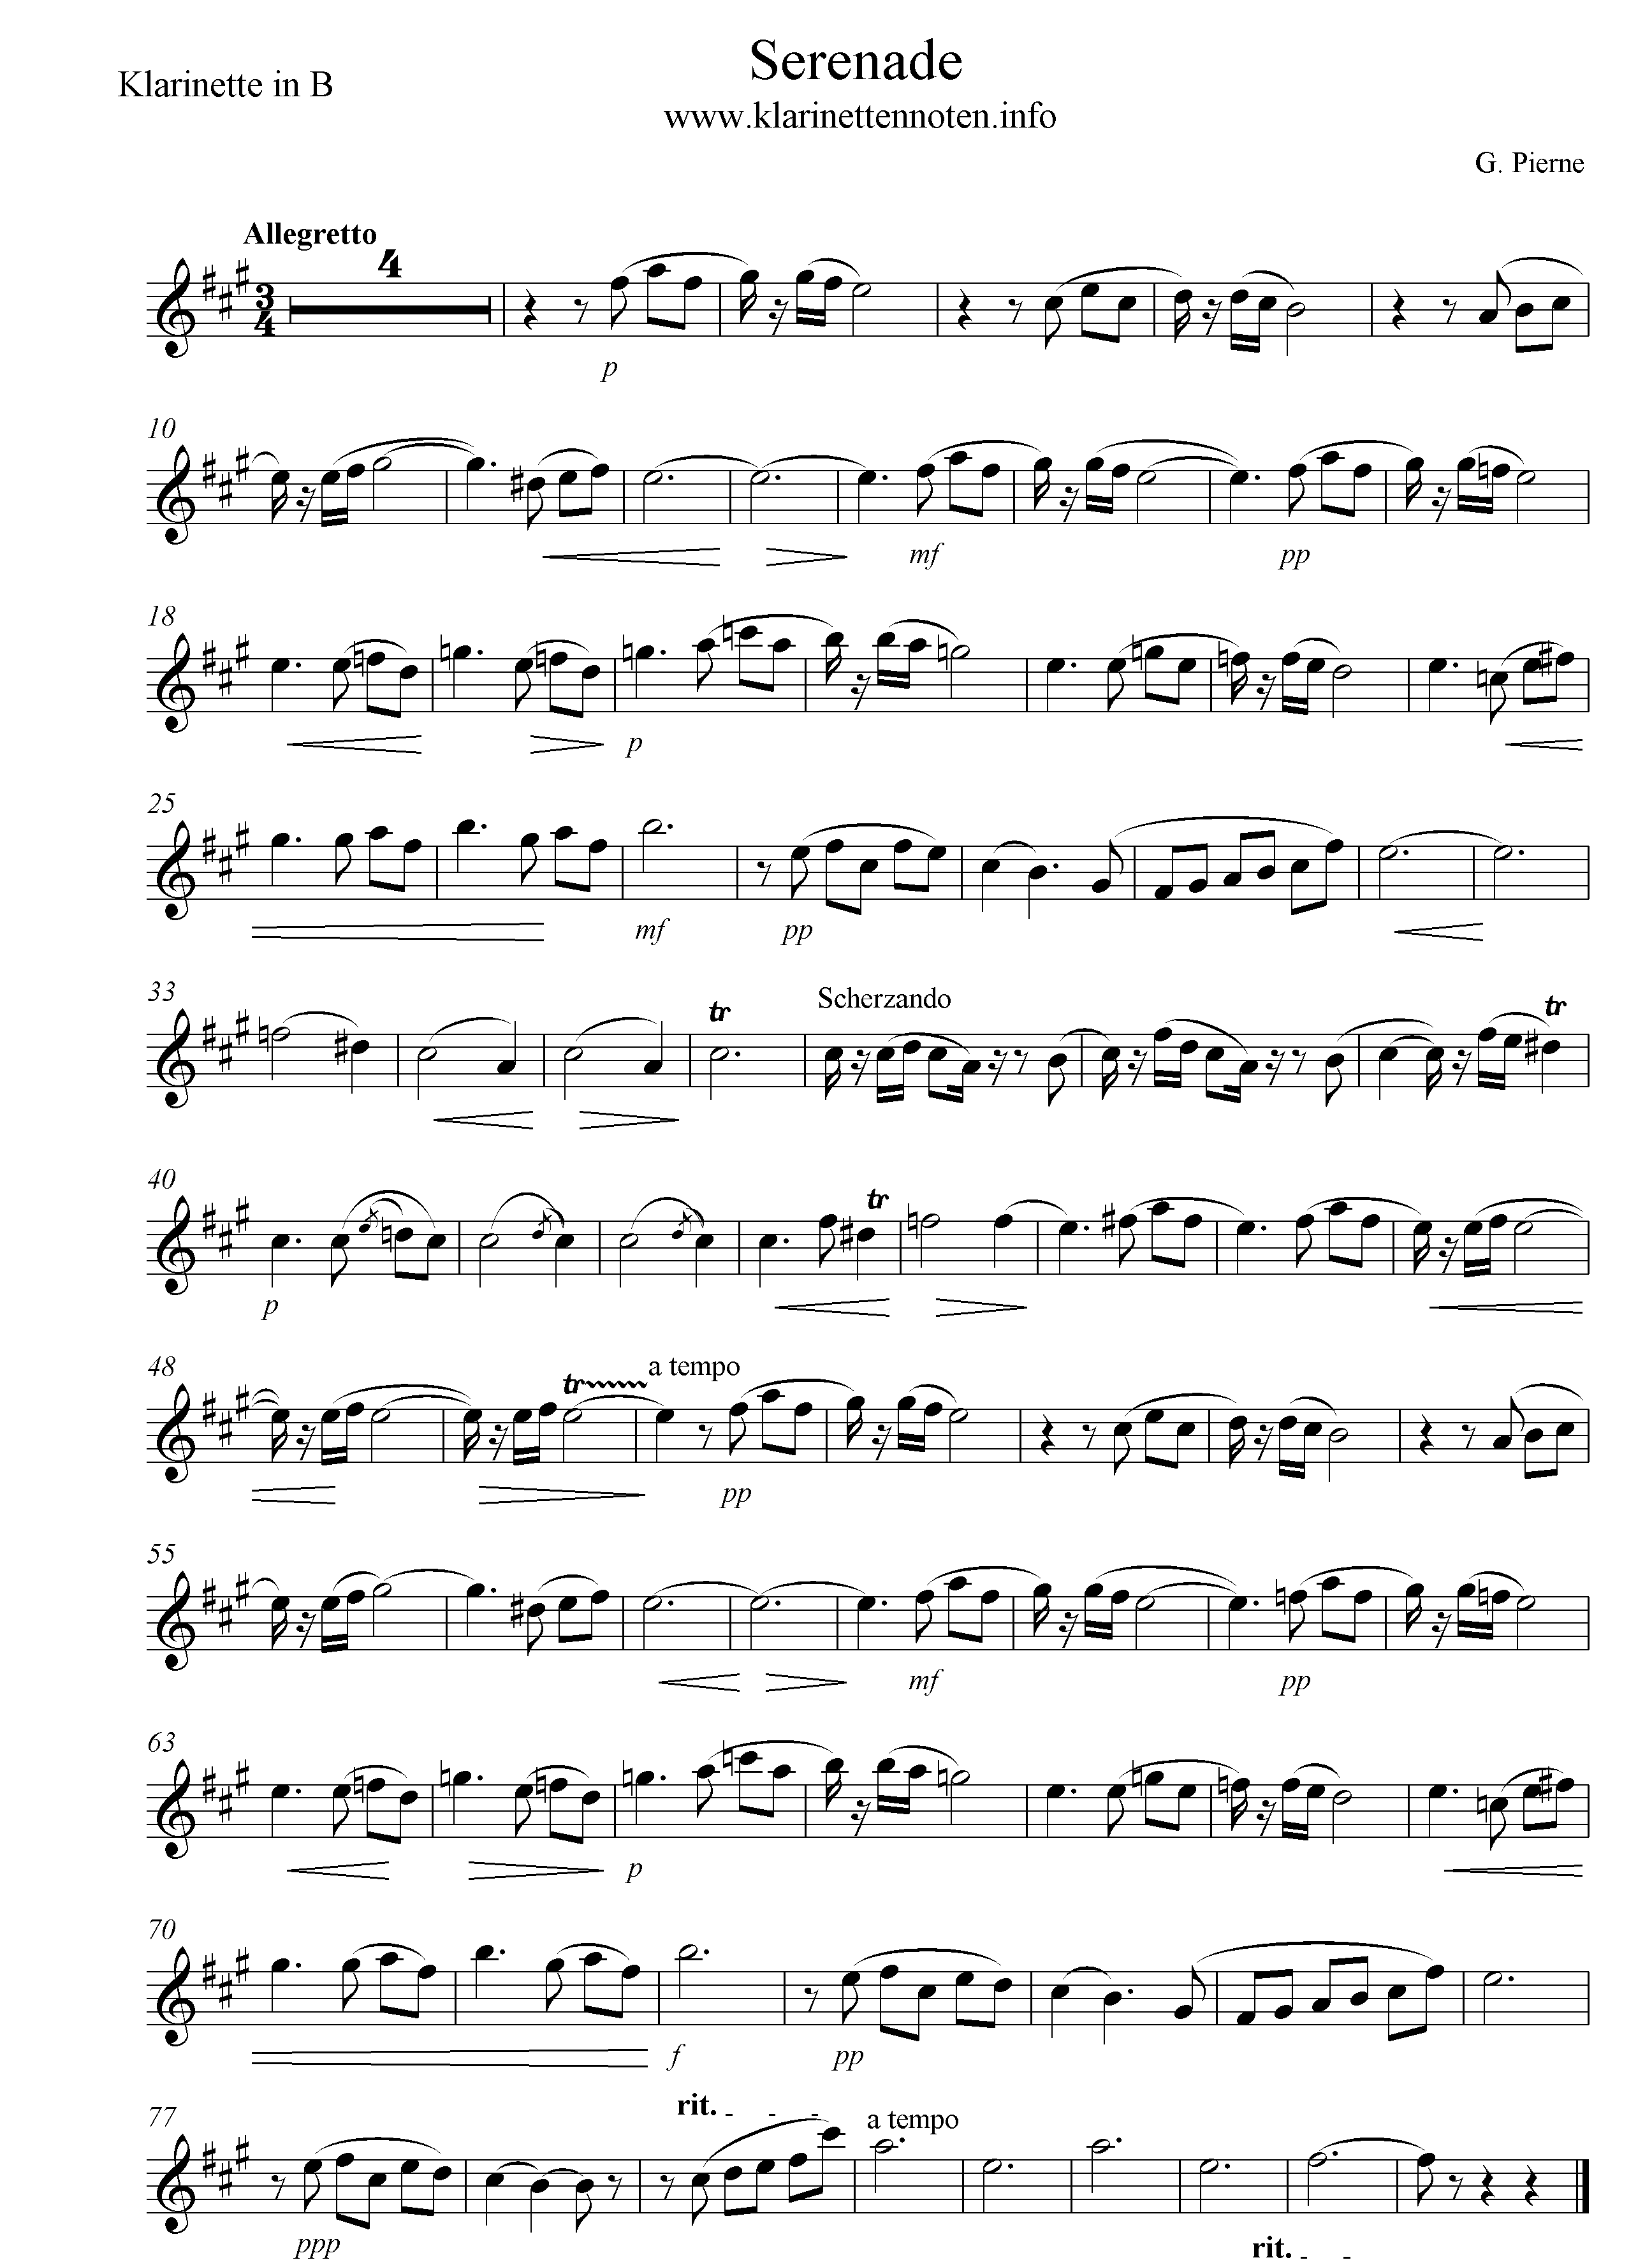 Freesheet Serenade Pierne Solo part